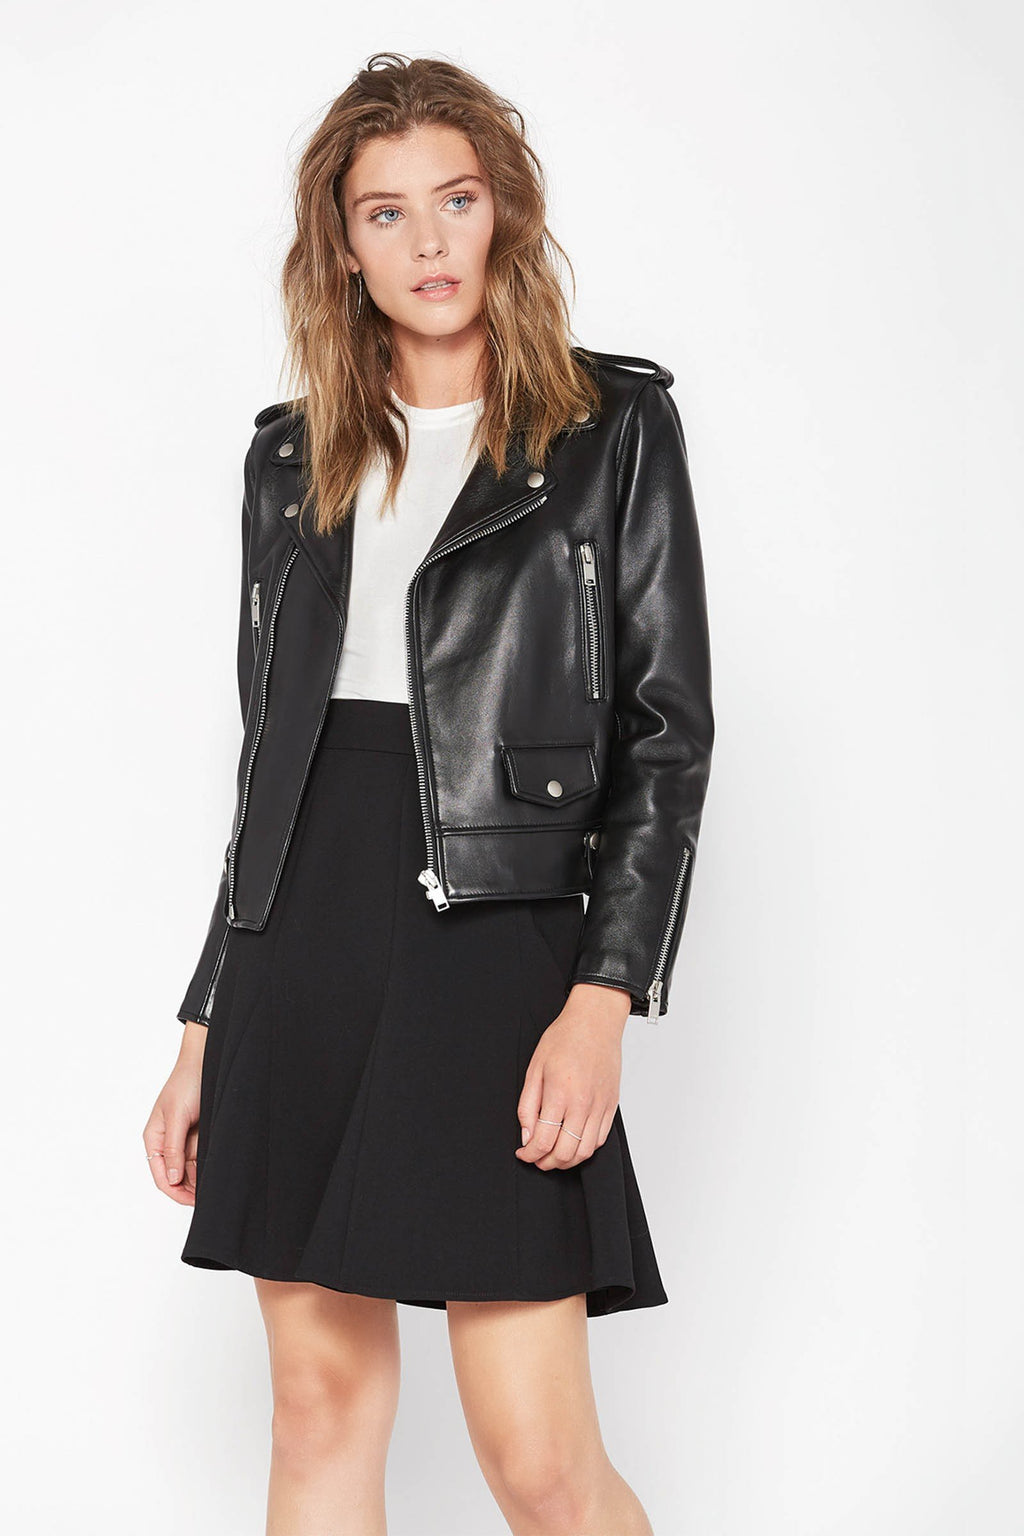 Joana Moto Jacket Black in Coats & Jackets by J.ING - an L.A based women's fashion line